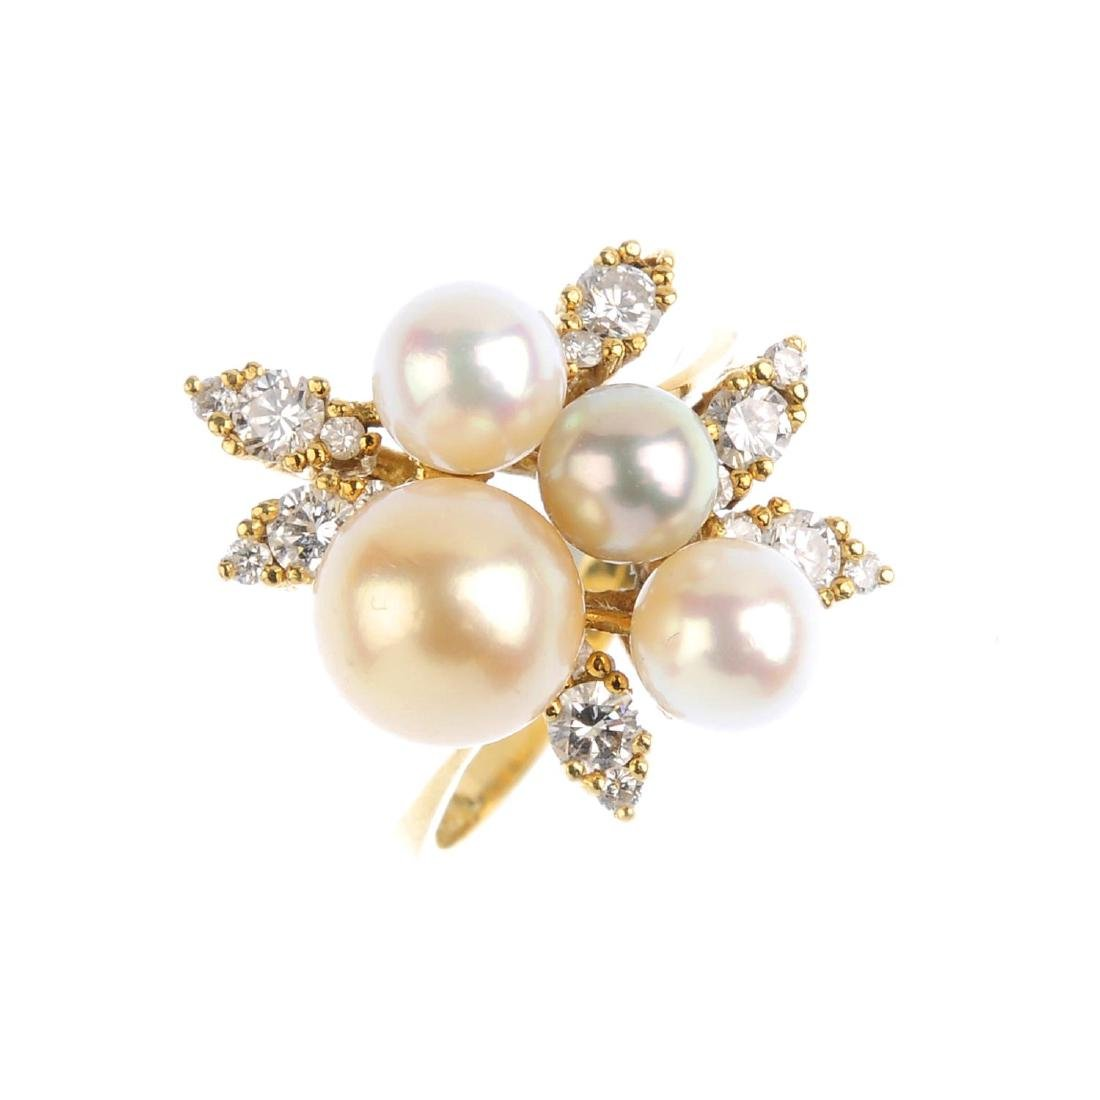 A cultured pearl and diamond dress ring. Designed as a